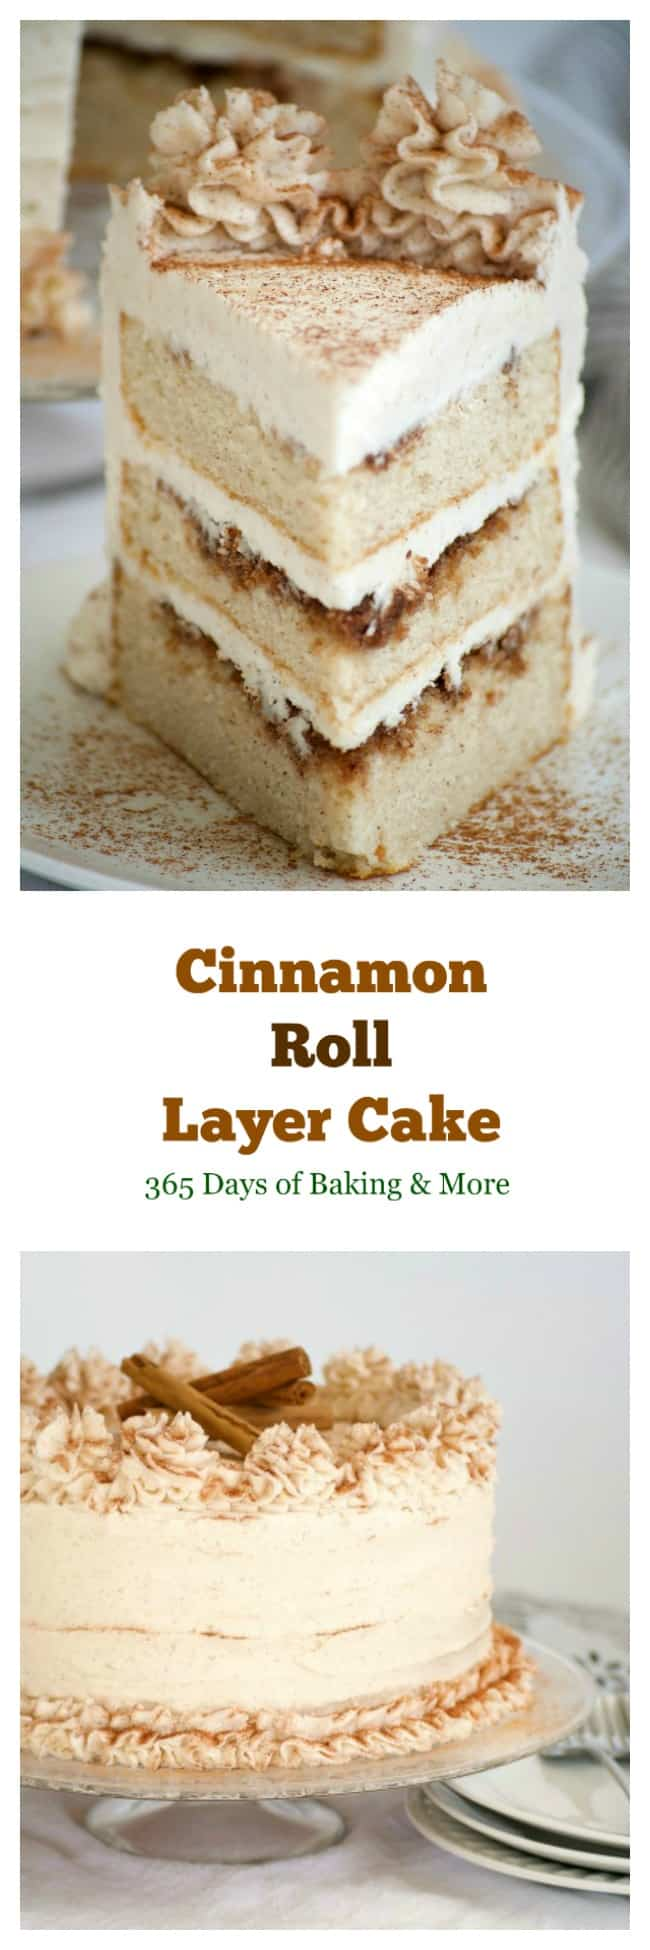 Cinnamon Roll Layer Cake - 365 Days of Baking and More